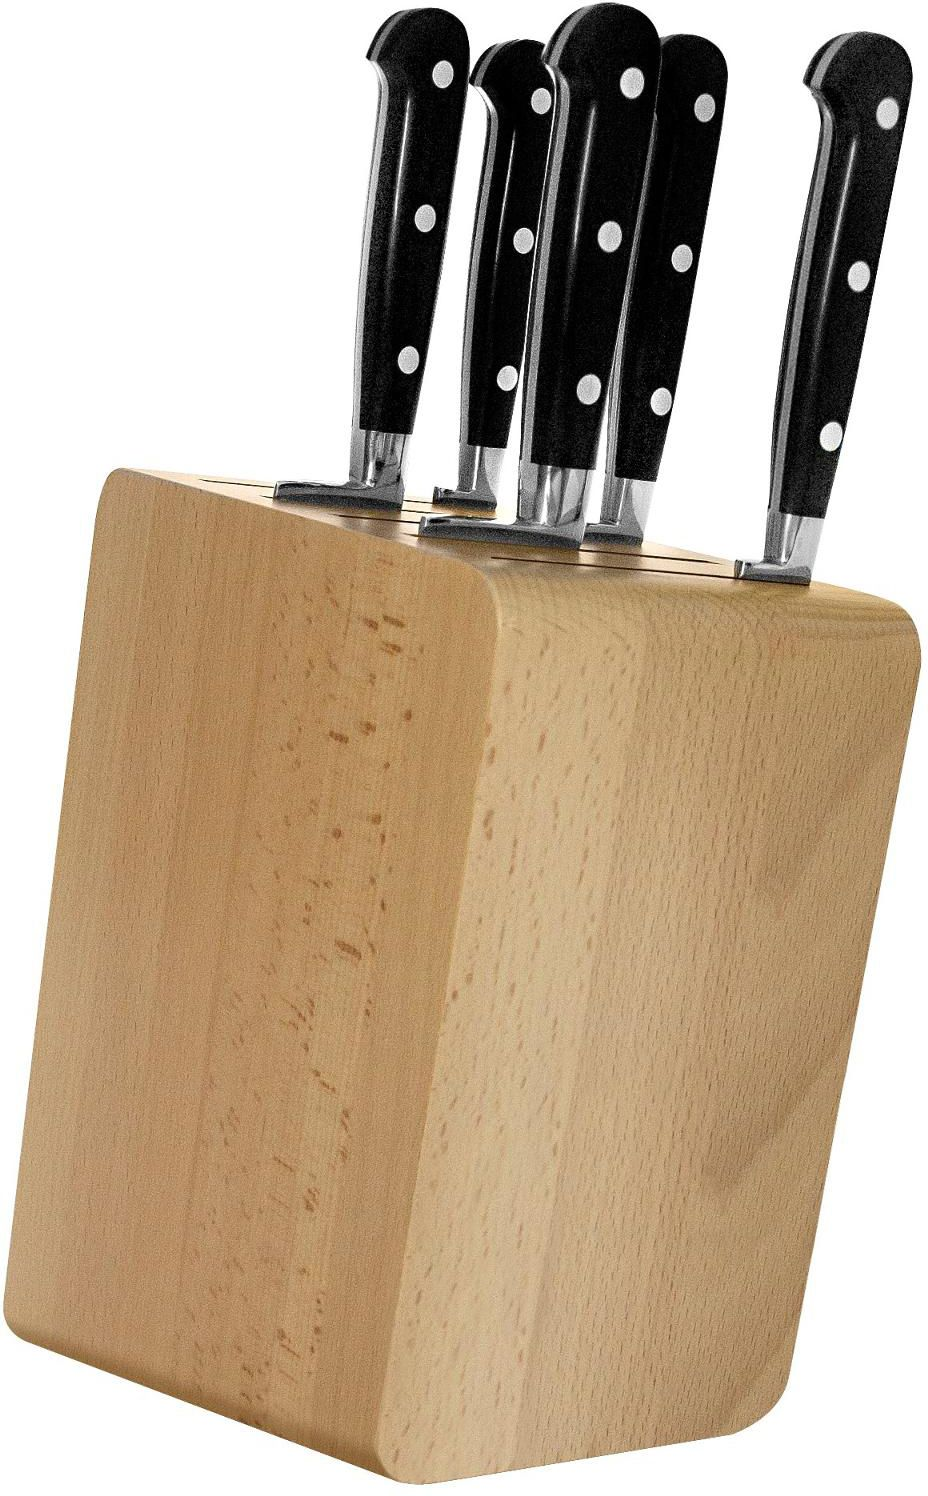 Maserin 2084/AP2 Apollo 2 Six Piece Kitchen Knife Stand Set, Black POM Handles